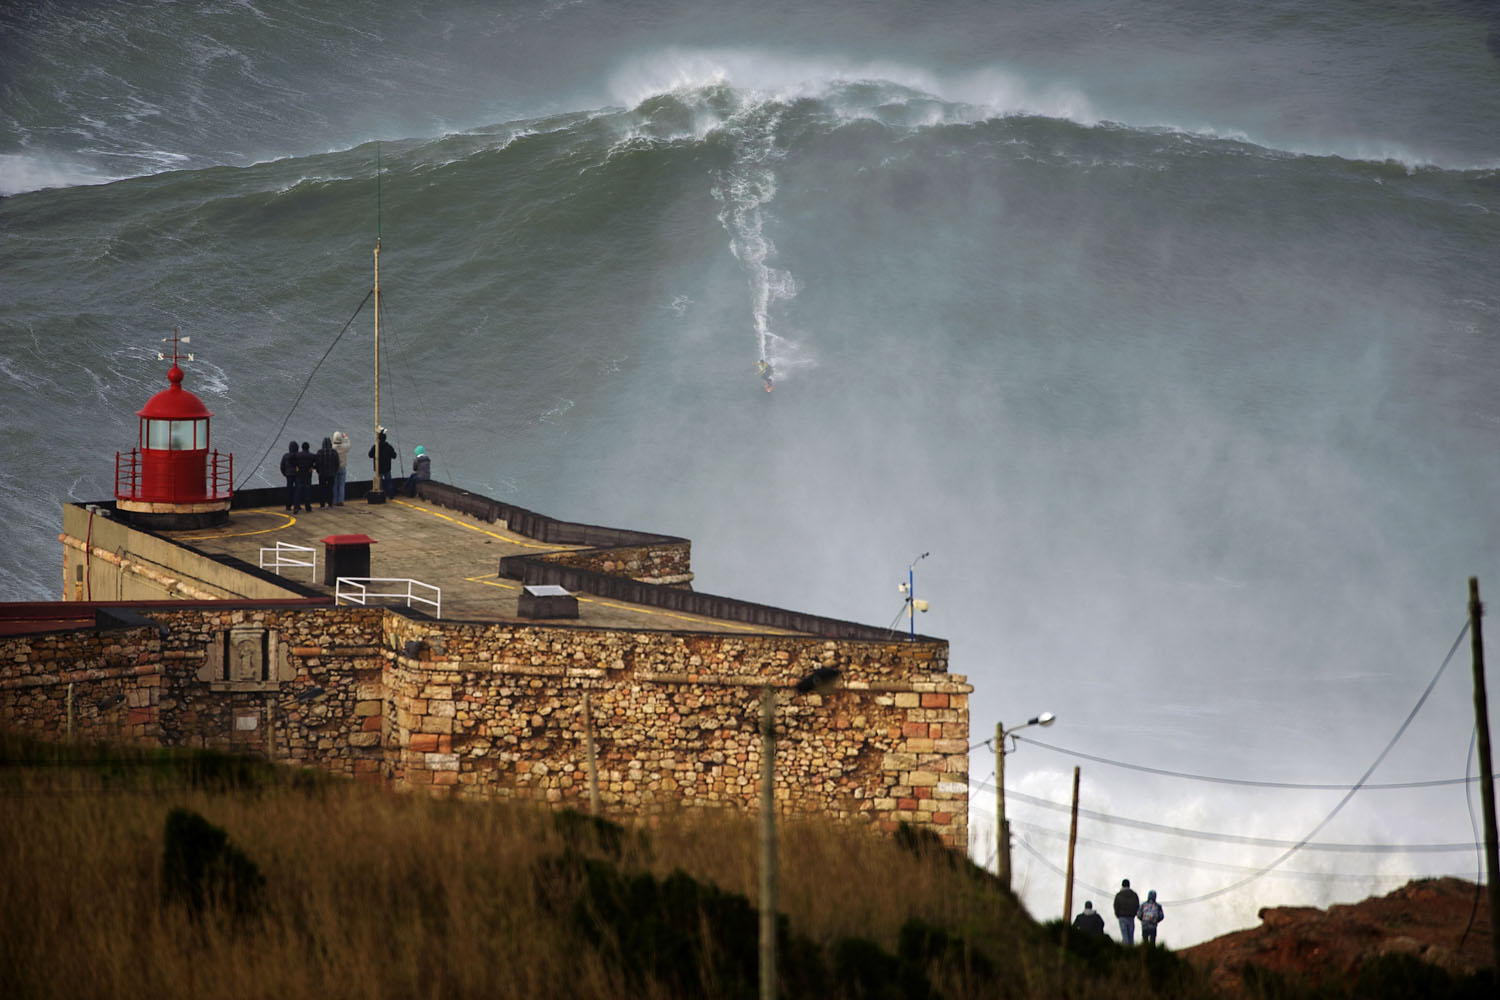 Jan. 28, 2013. U.S. surfer Garrett McNamara rides a wave off Praia do Norte beach in Nazare, Portugal. McNamara is said to have broken his own world record for the largest wave surfed when he caught this wave reported to be around 100ft, off the coast of Nazare. If the claims are verified, it will mean that McNamara, who was born in Pittsfield, Massachusetts but whose family moved to Hawaii's North Shore when he was aged 11, has beaten his previous record, which was also set at Nazare, of 23.77 meters (78 feet) in November 2011.